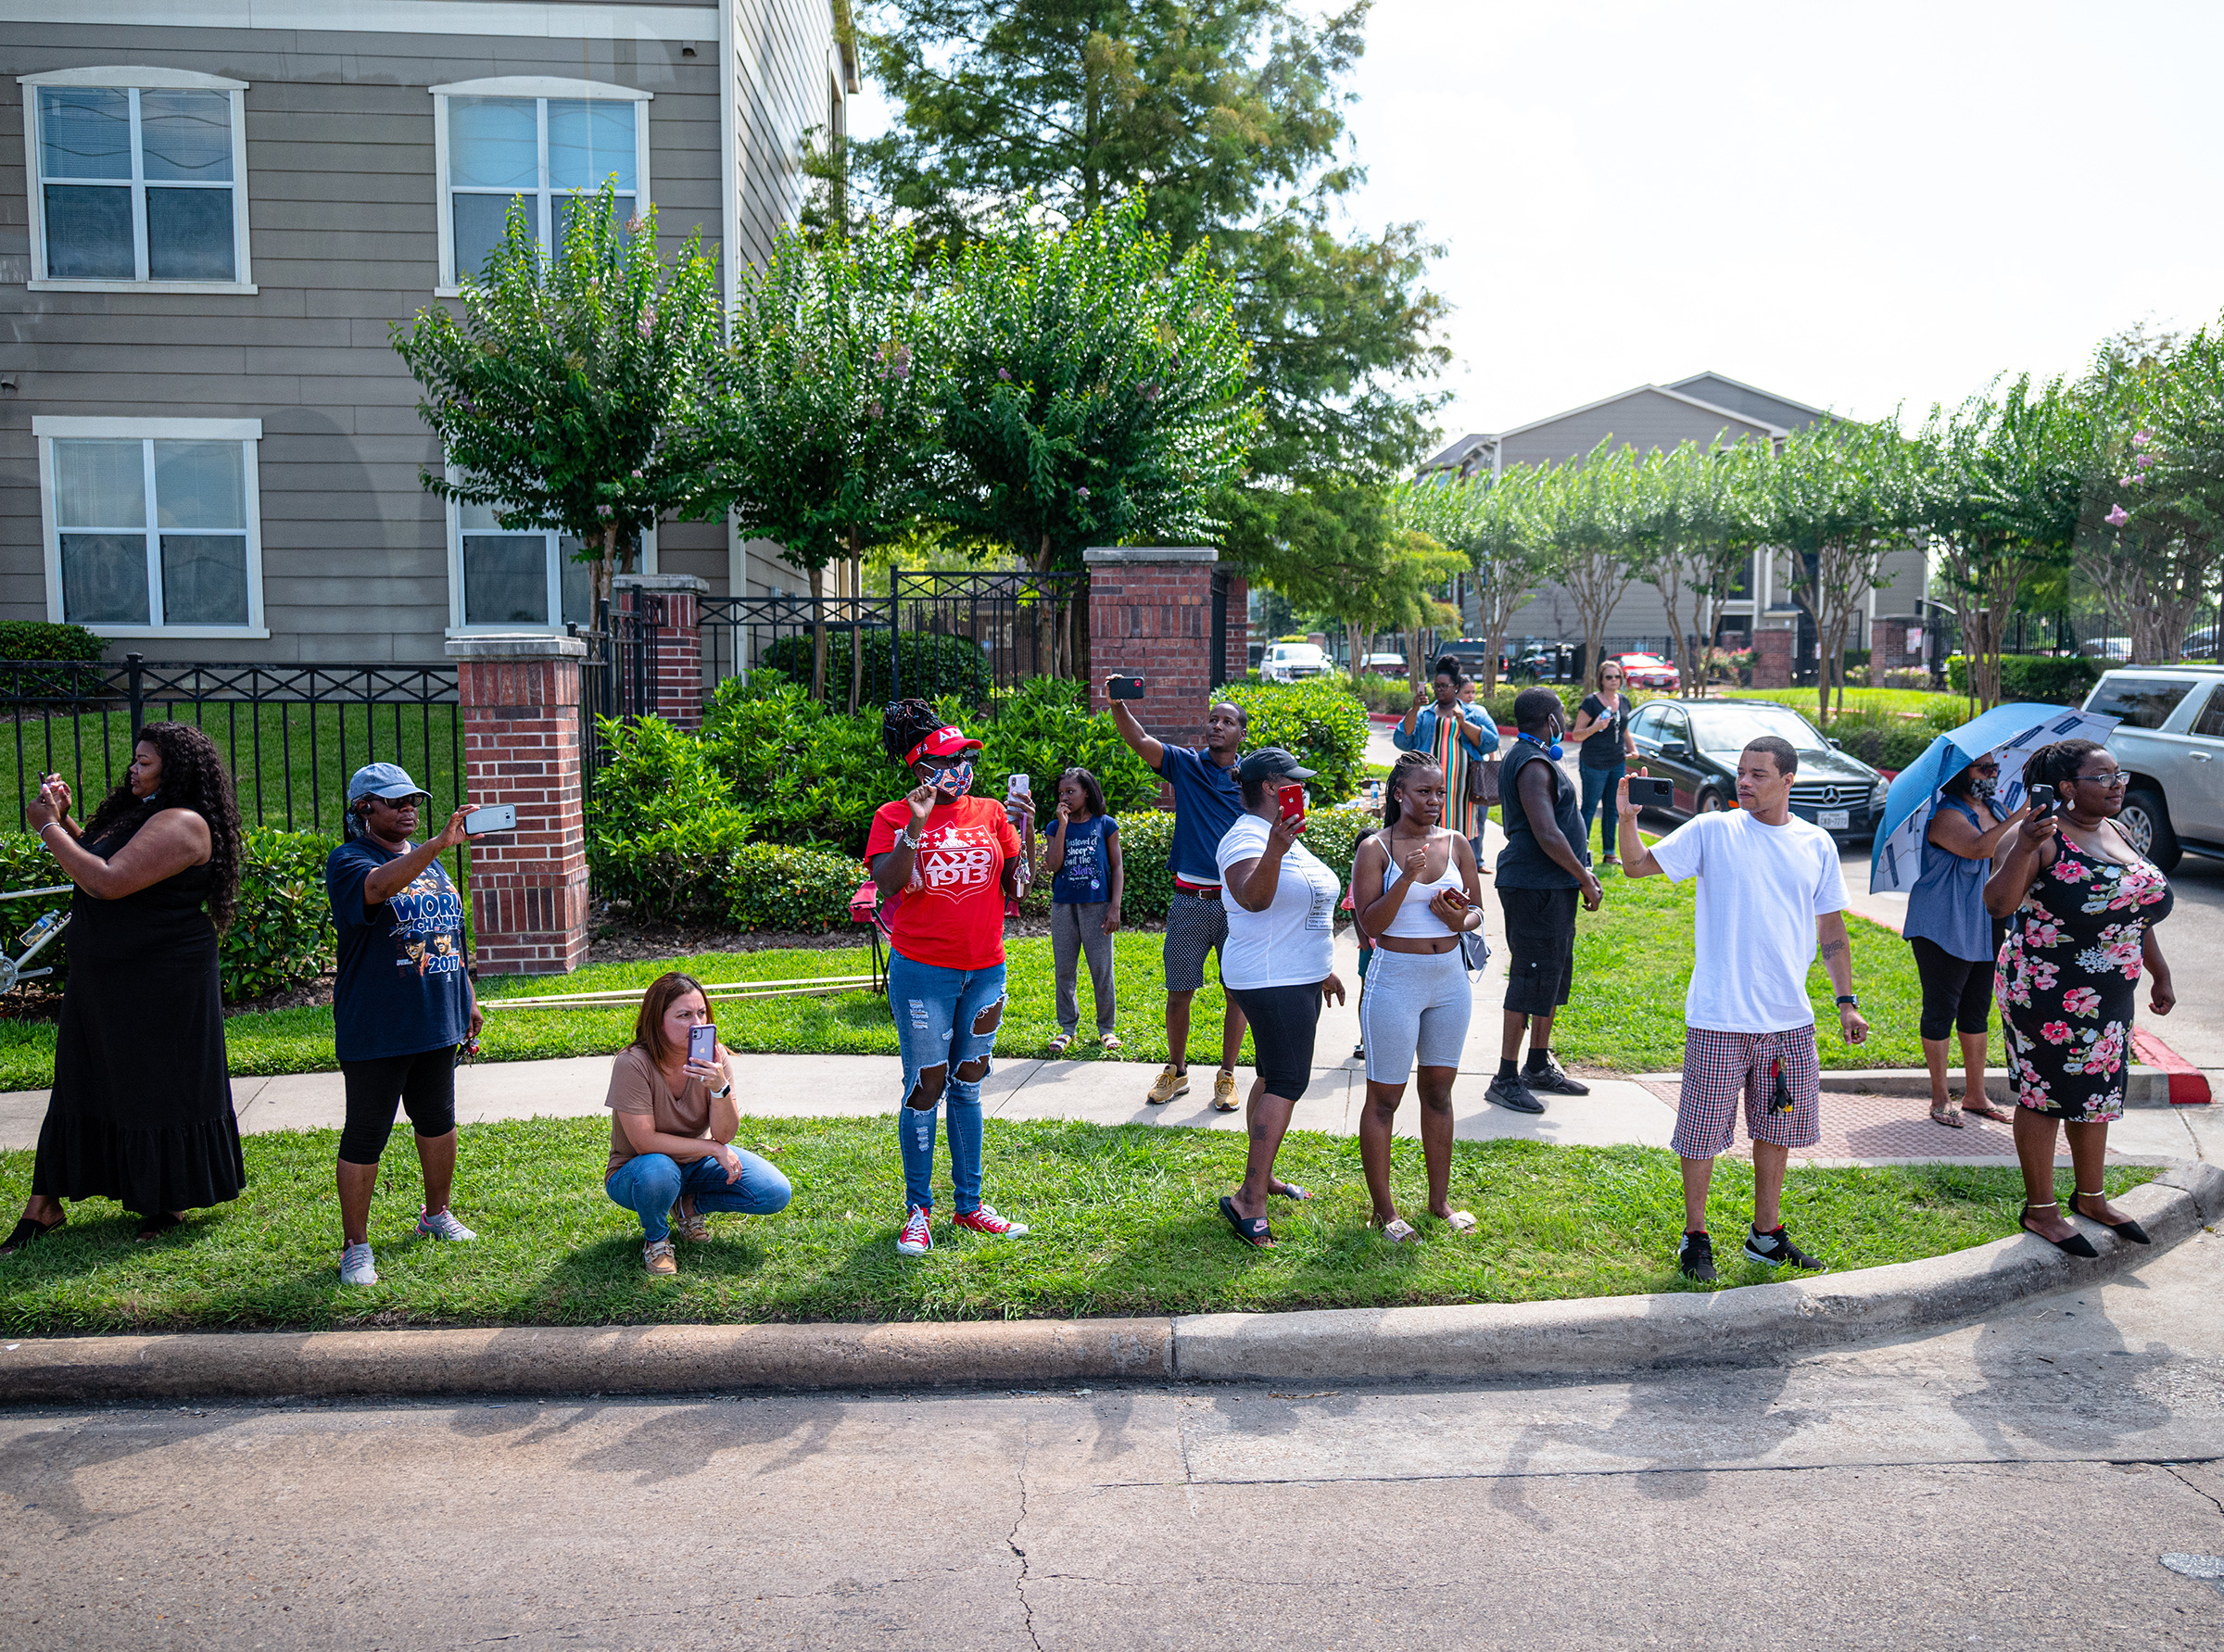 Onlookers document the passing of George Floyd's funeral procession on June 9.